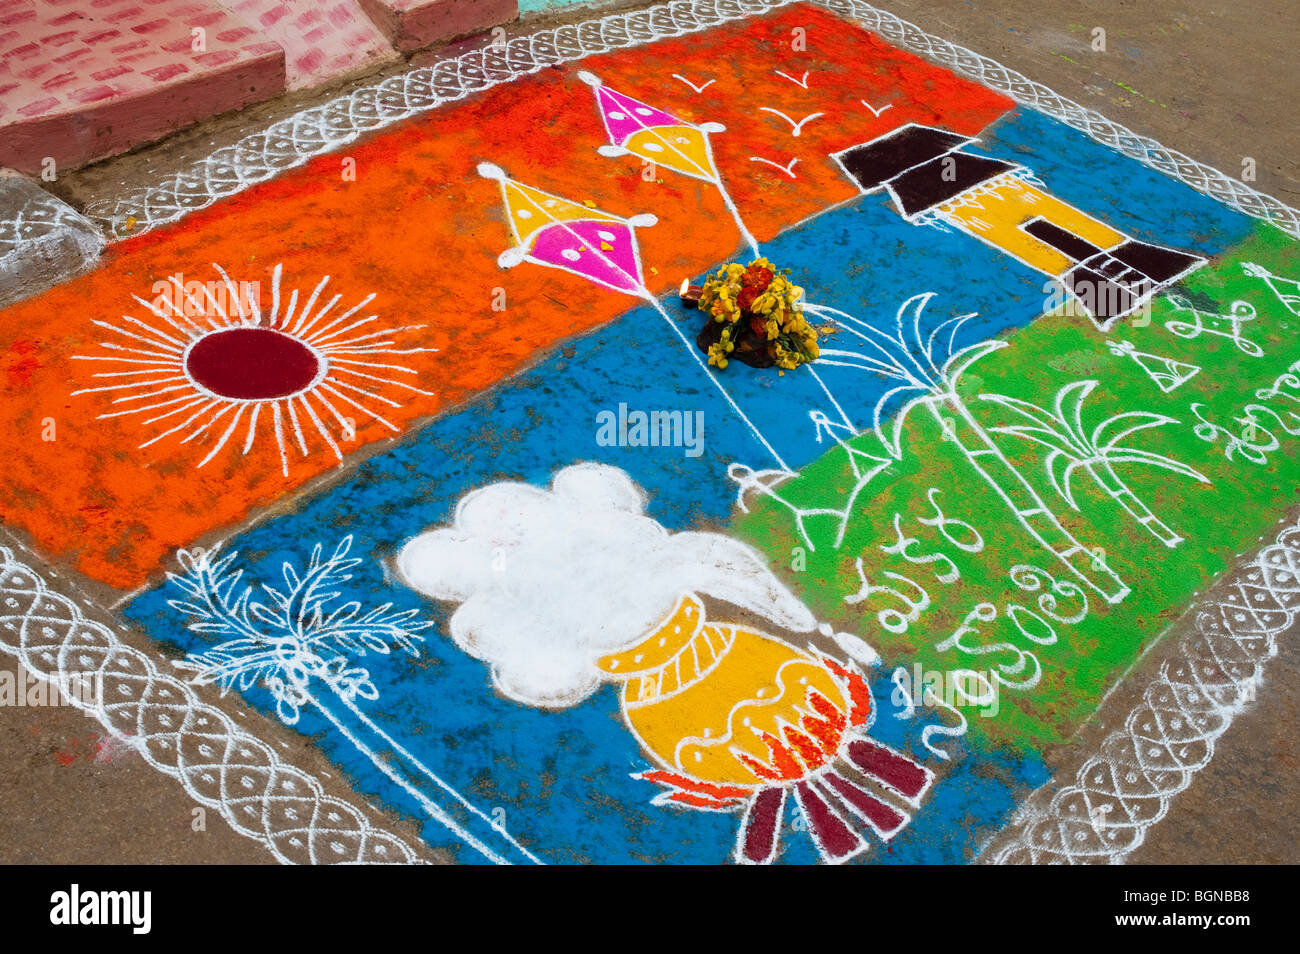 33   Amazing Rangoli Designs For Competition With Concepts for Rangoli Designs For Competition With Concepts For Kids  545xkb